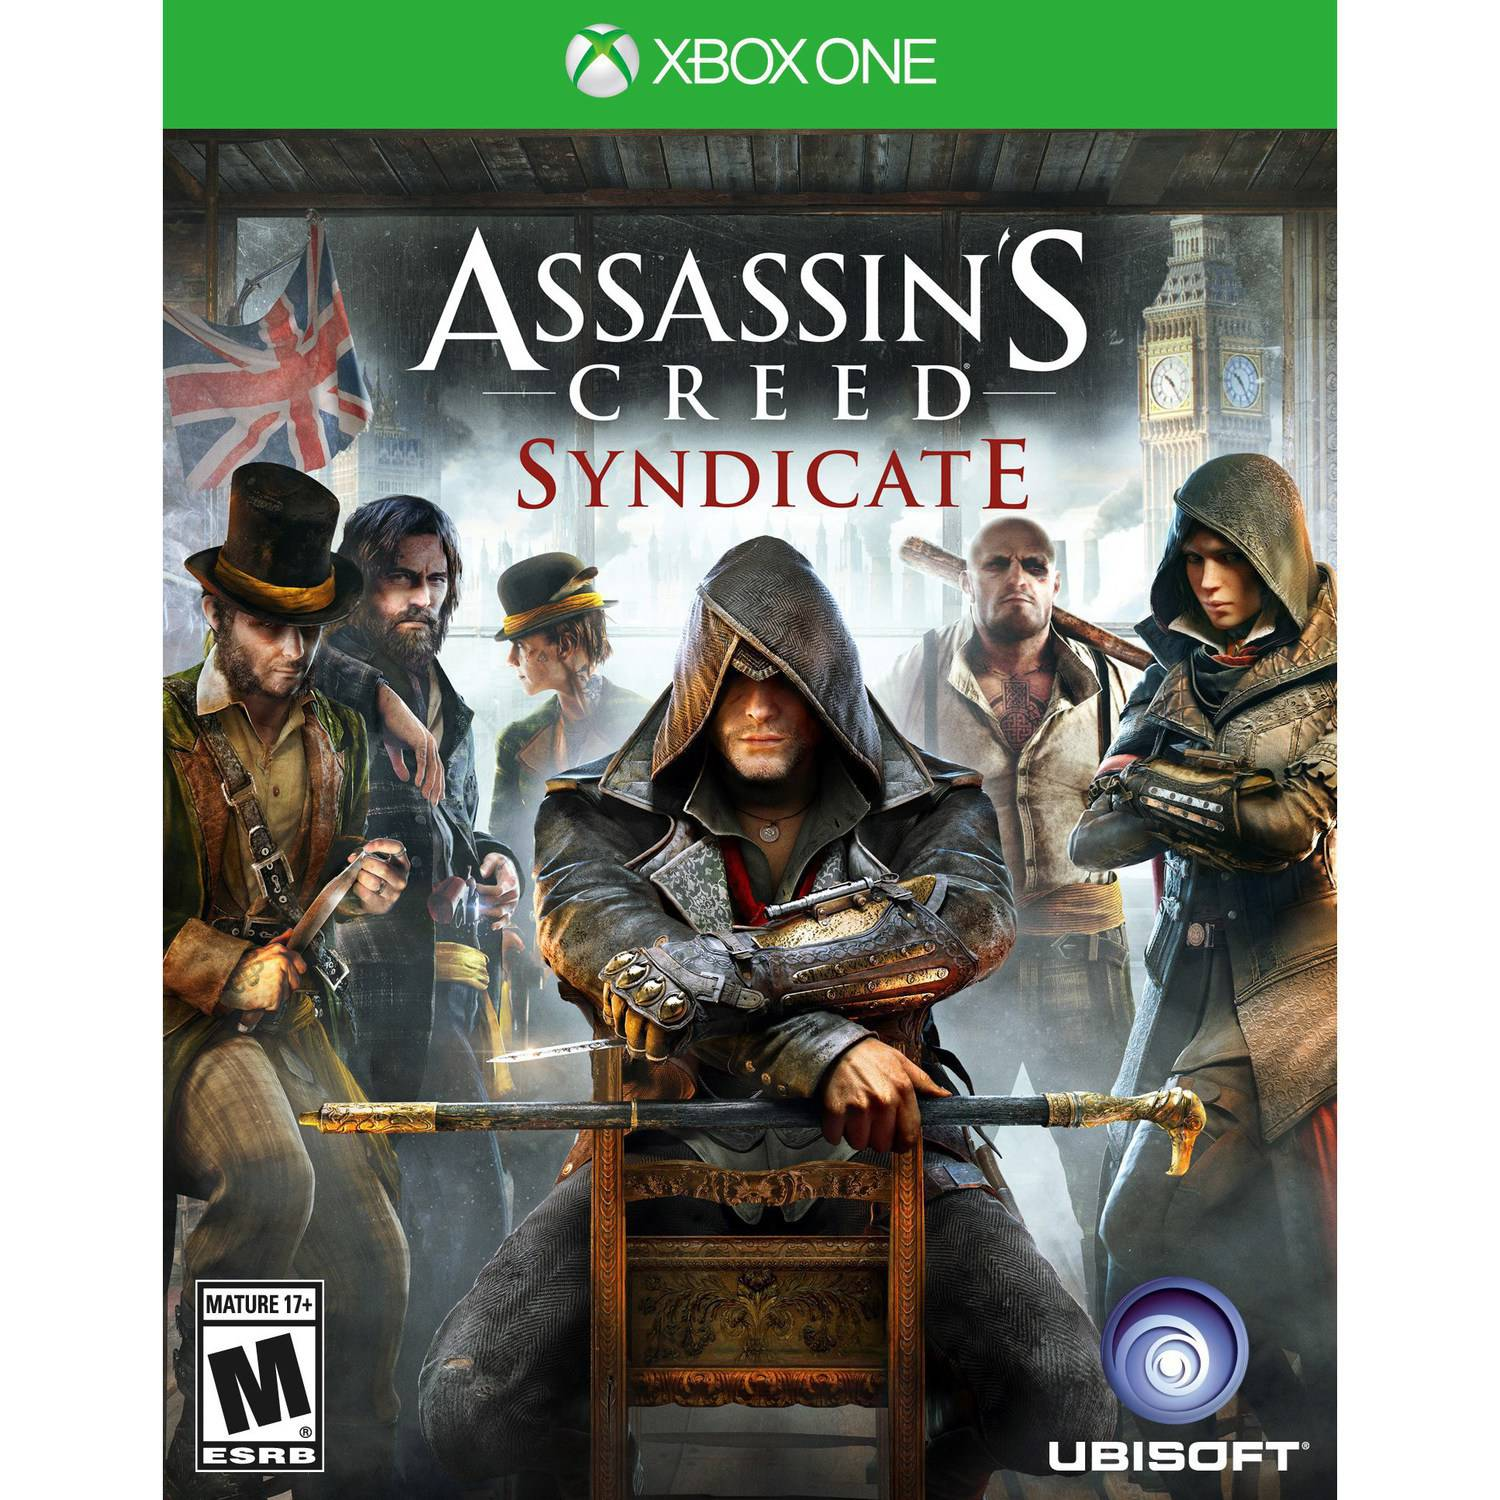 Assassin's Creed Syndicate (Xbox One) - Pre-Owned